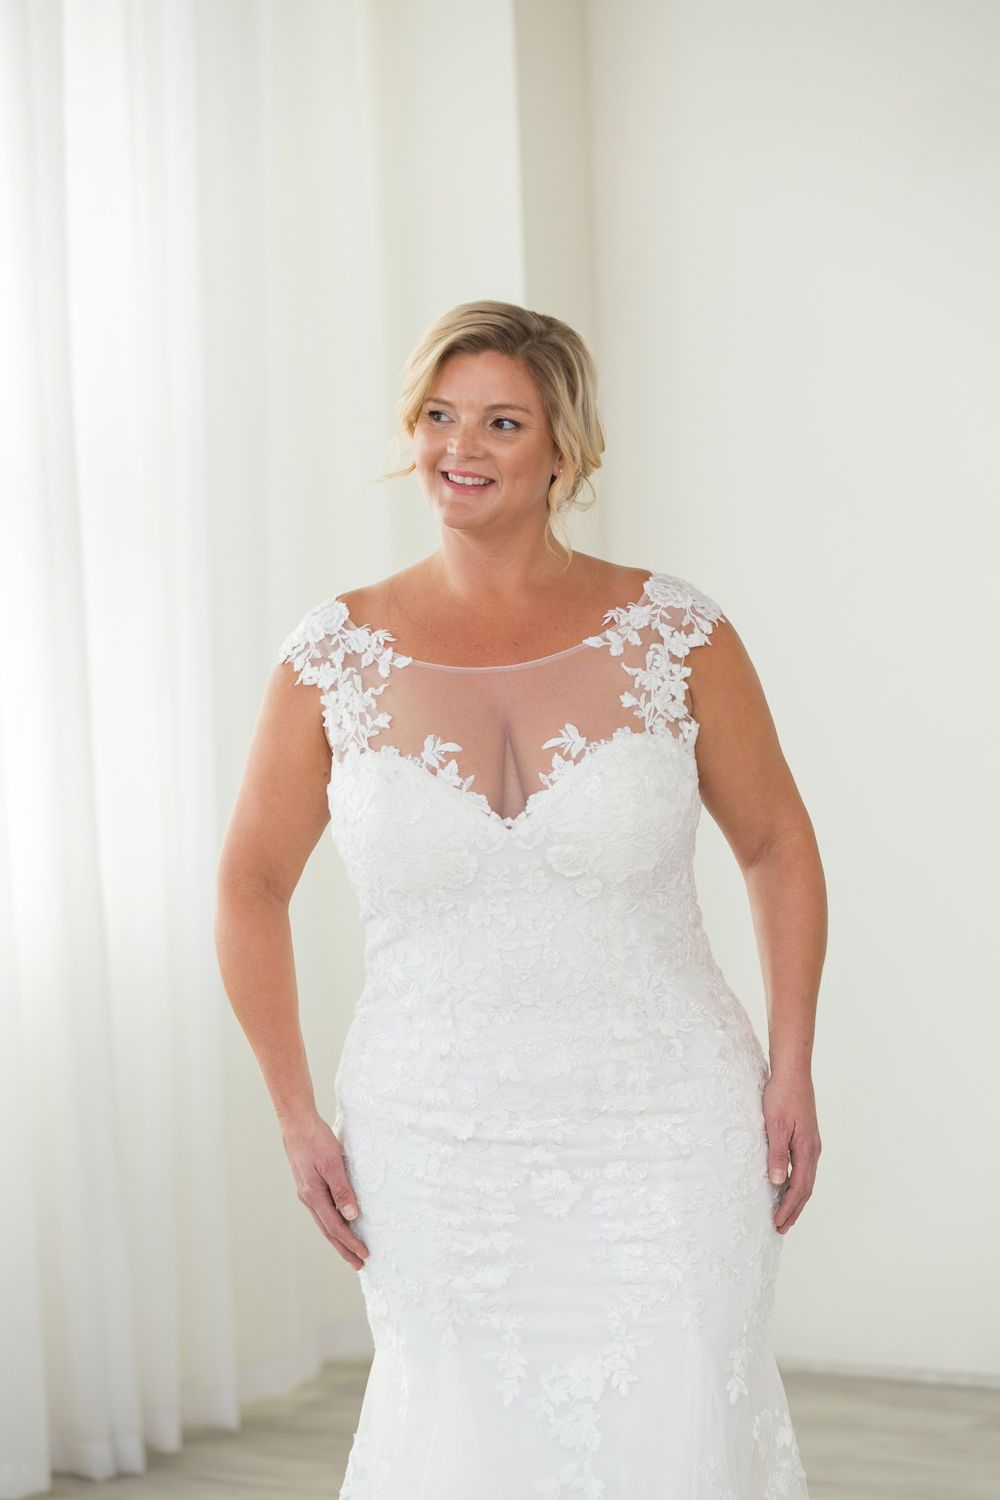 Fitted Lace Wedding Dress Sheer Illusion Neckline Plus Size Wedding Dress By Justin Fitted Wedding Dress Plus Size Wedding Gowns Fitted Lace Wedding Dress